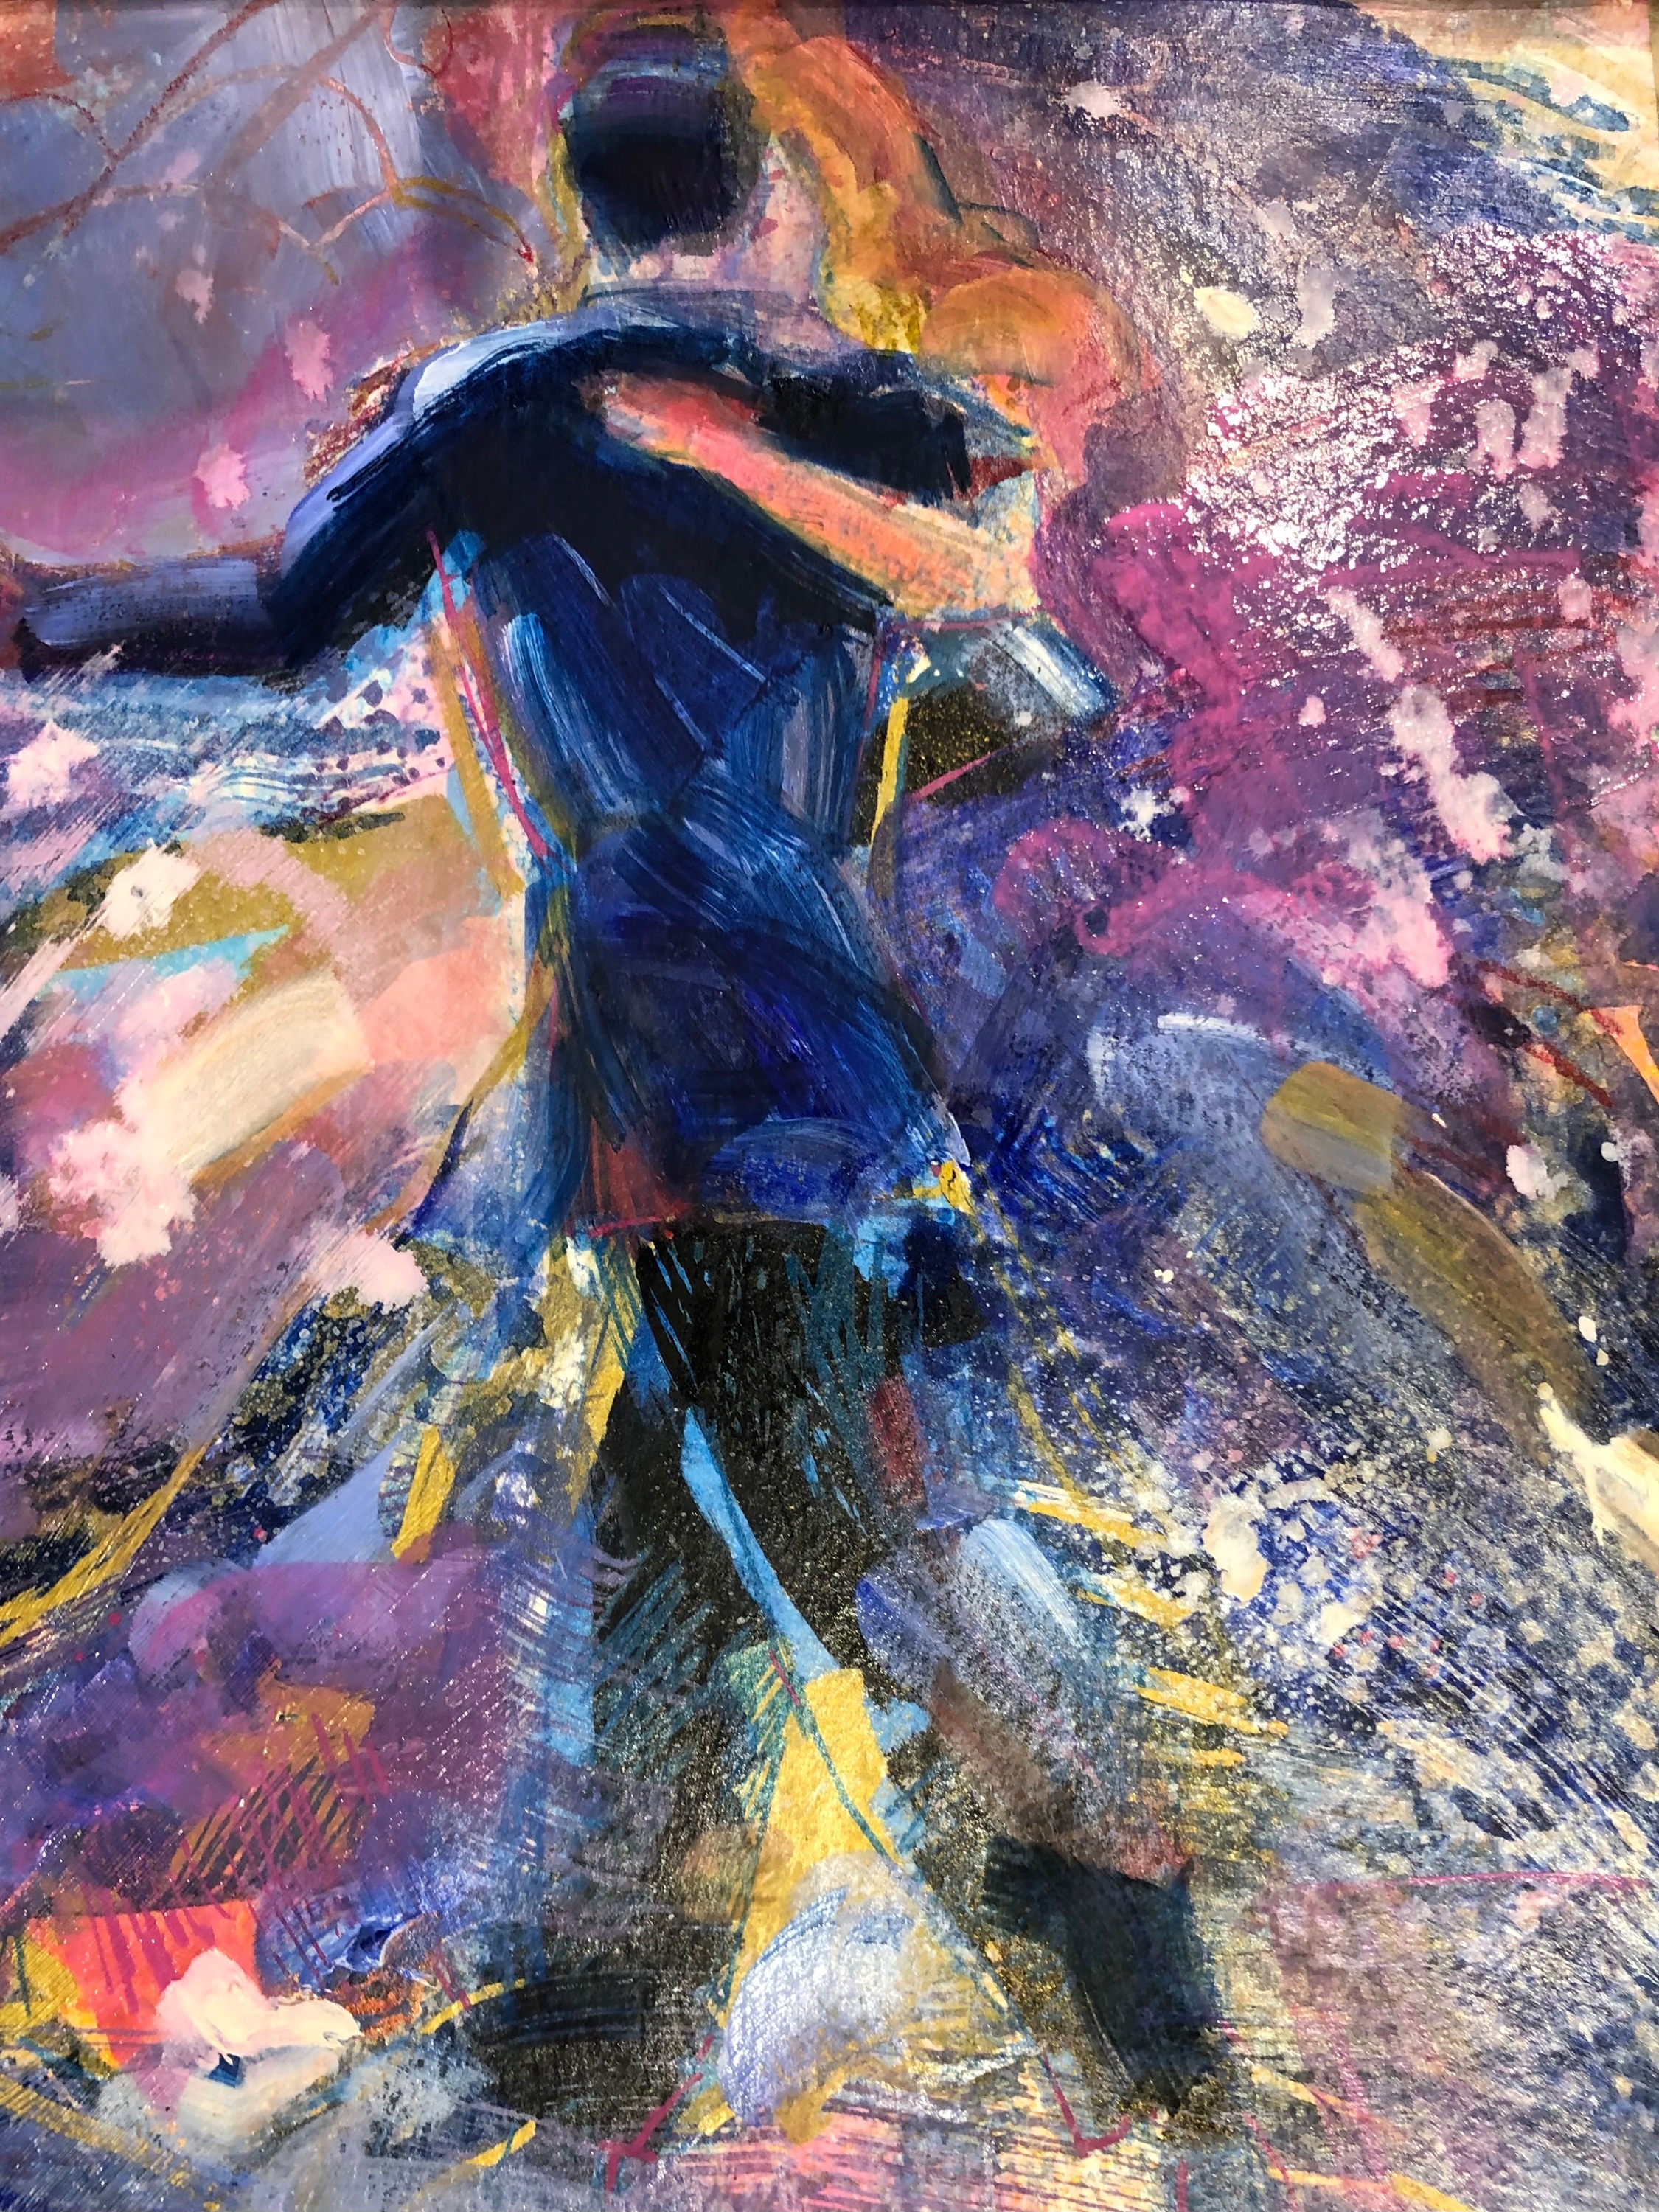 Heaven dancers 2 oil and mixed media on paper 12x9. waotzw